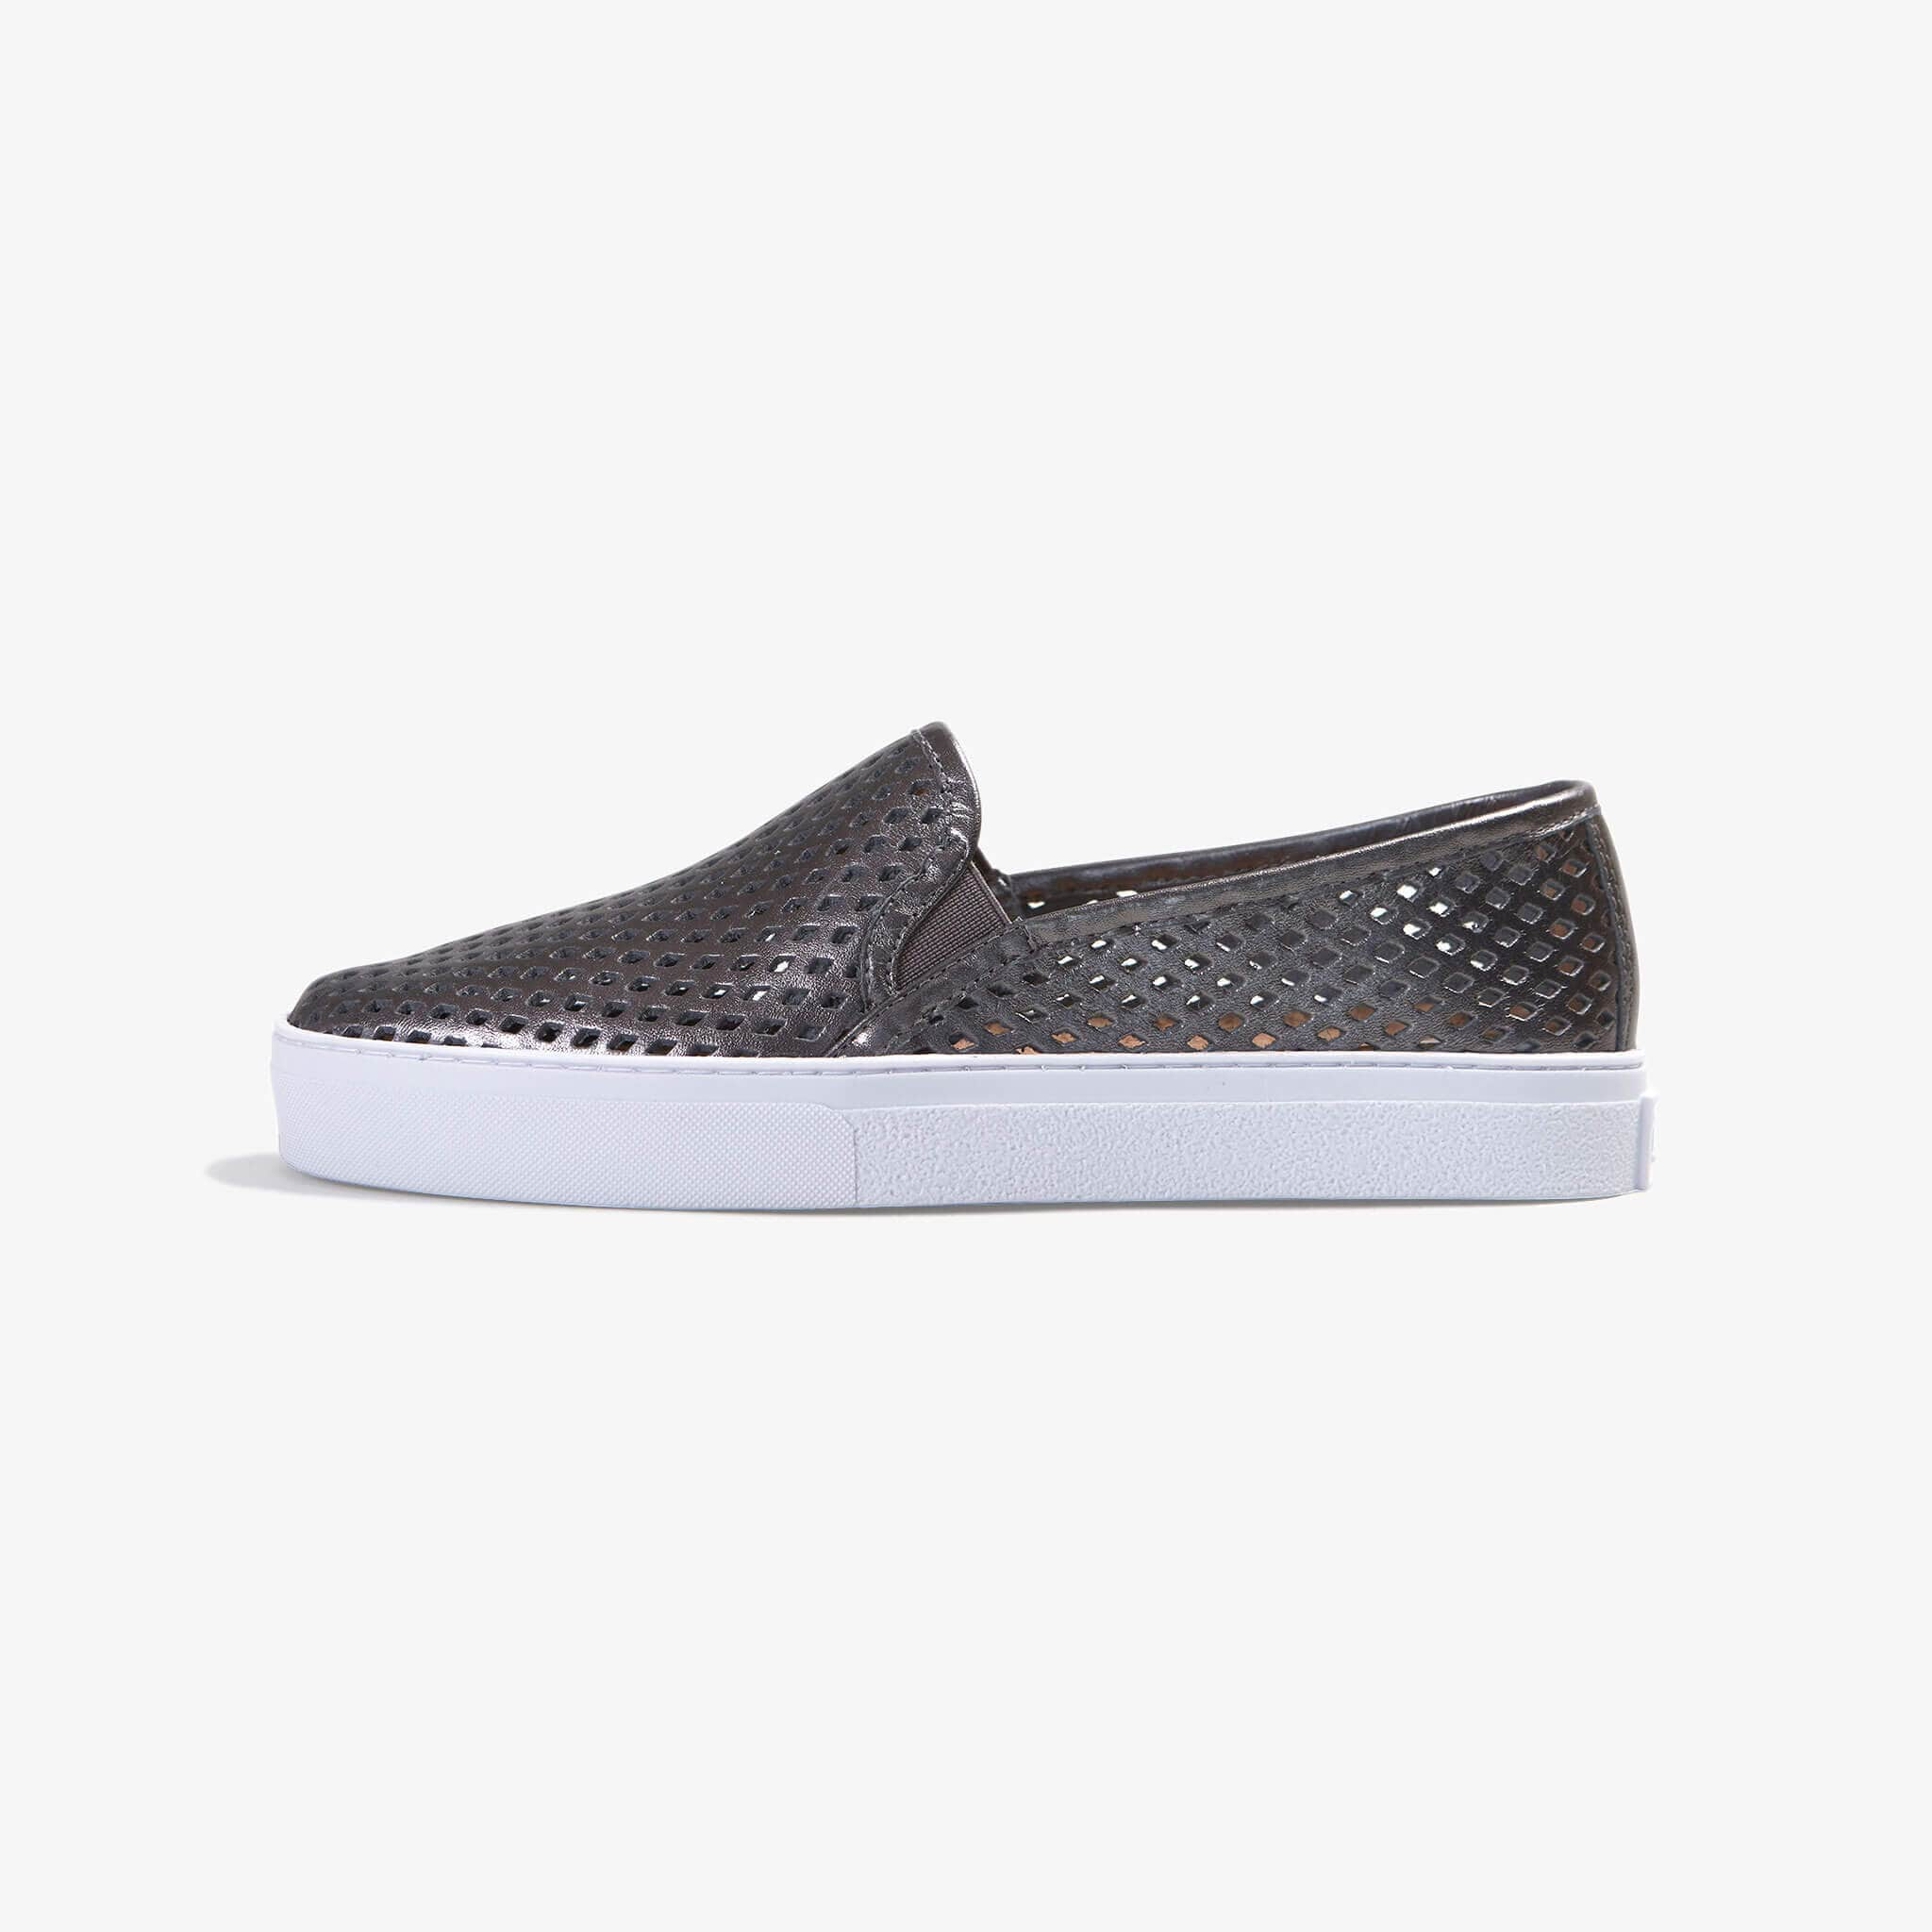 Jibs Classic Space Gray Slip On Sneaker-Shoe Side